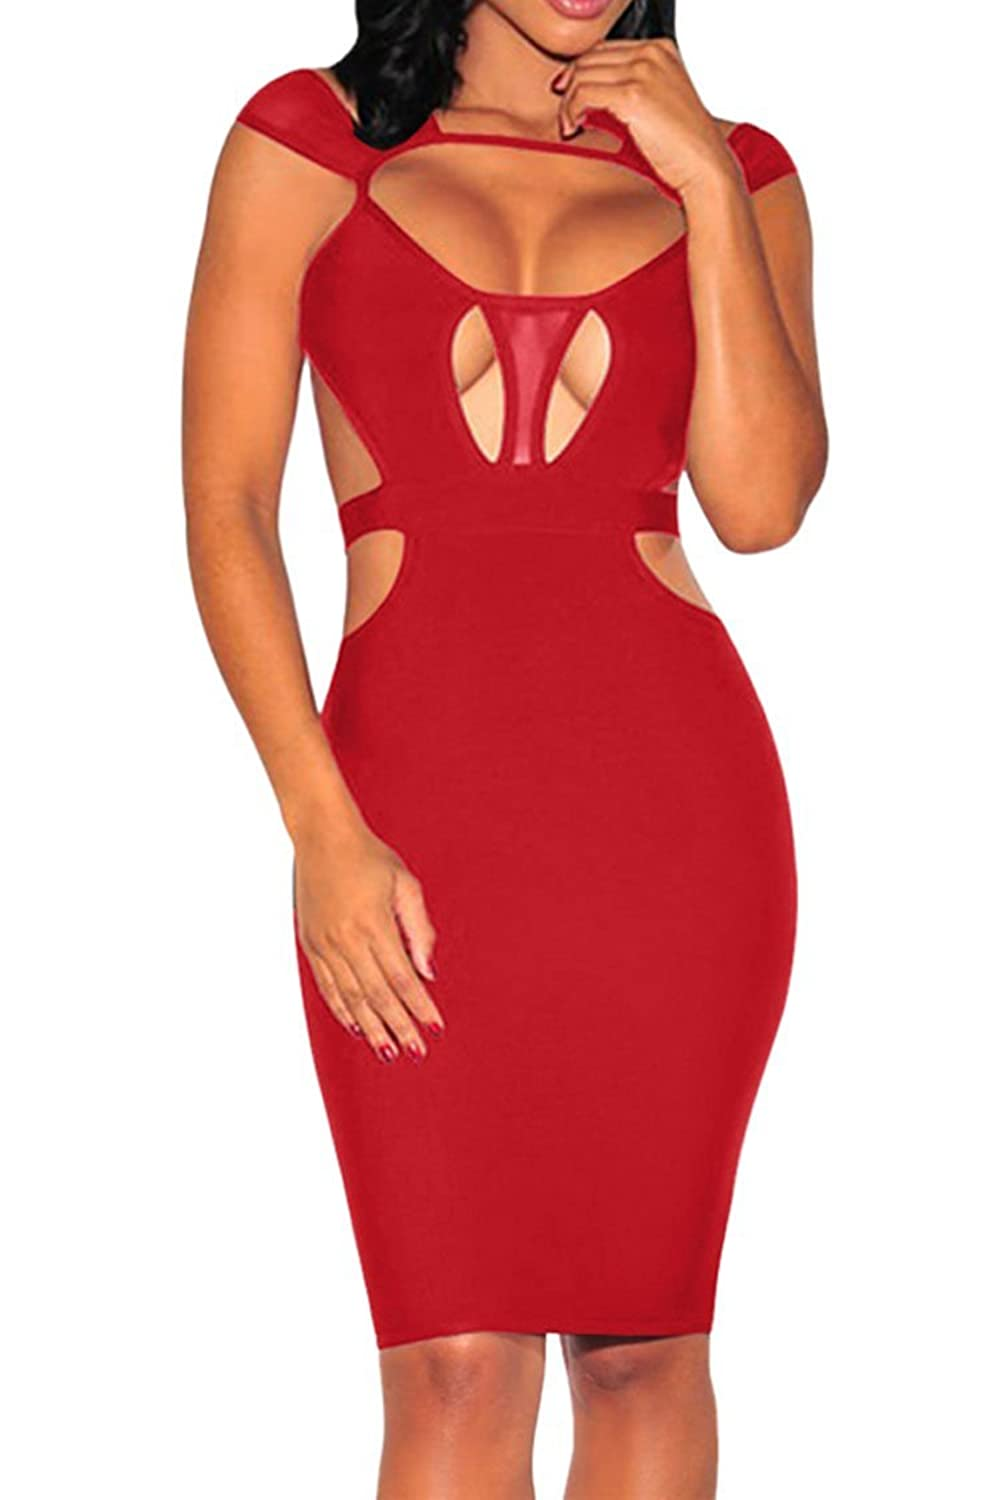 LOV ANNY Women's Sexy Keyhole Backless Hollow Out Bandage Club Bodycon Dress